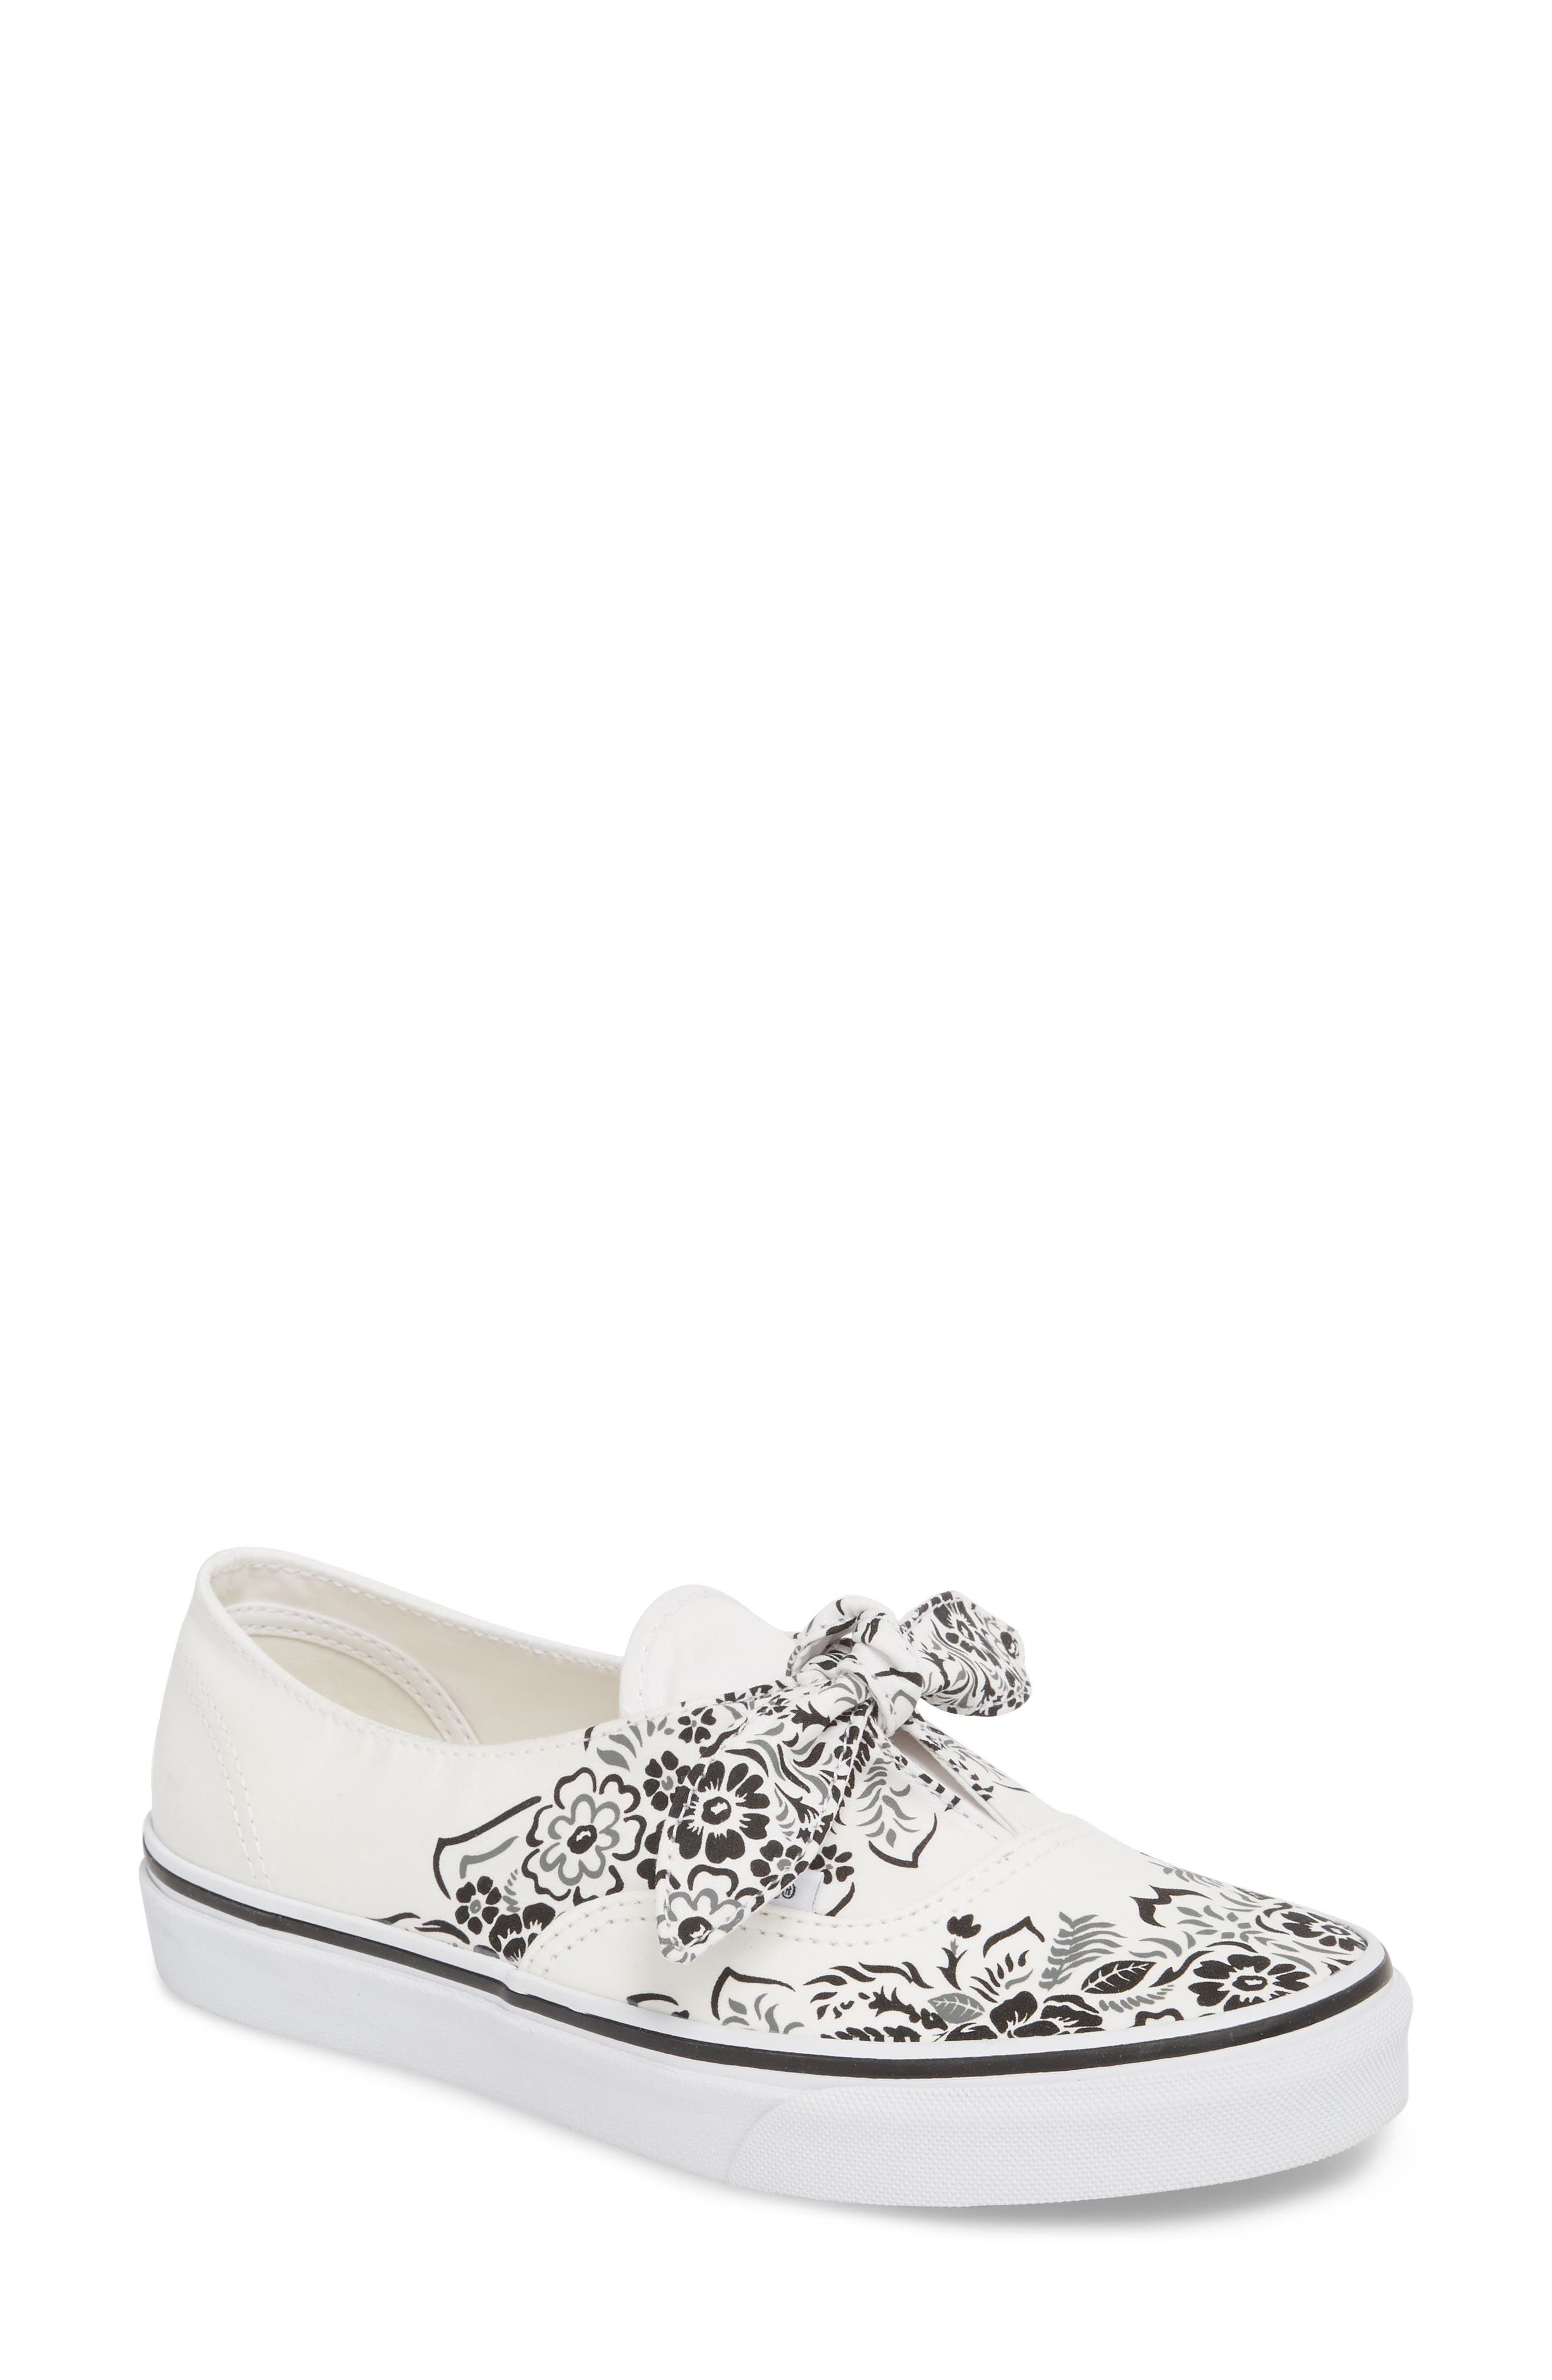 UA Authentic Knotted Floral Bandana Slip-On Sneaker,                         Main,                         color, 100